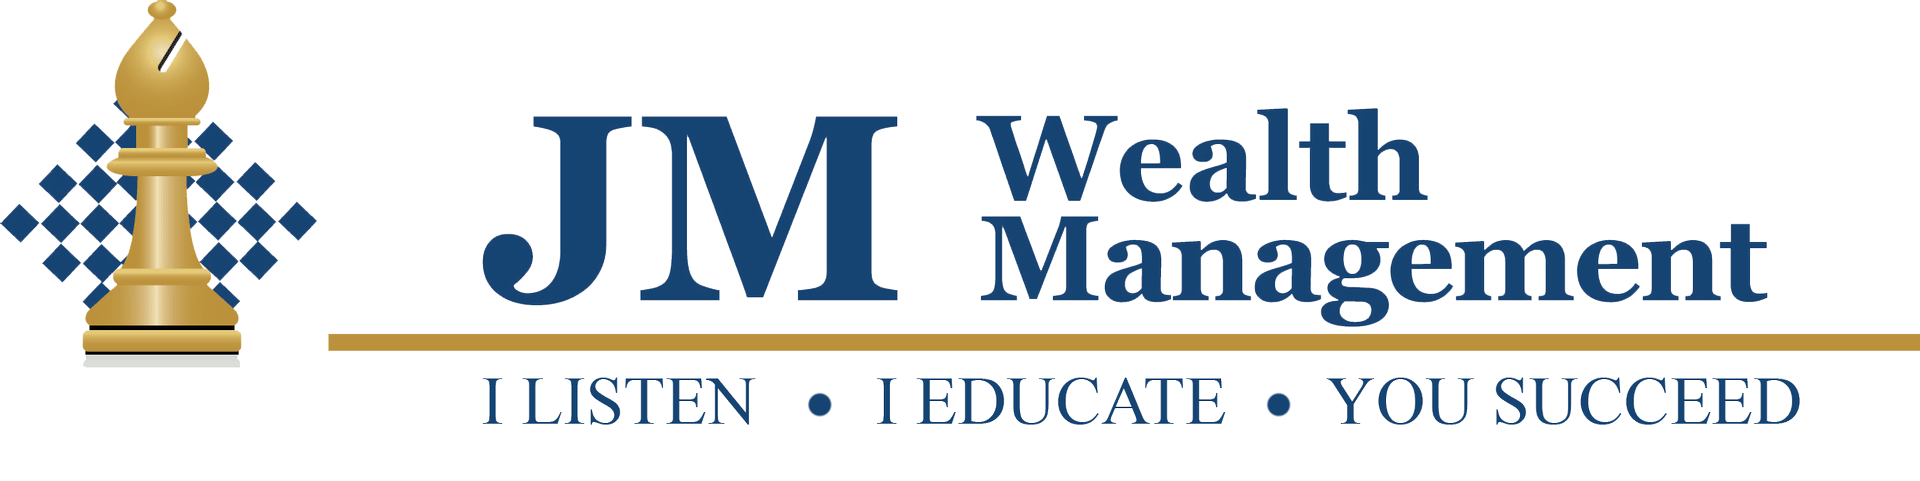 JM Wealth Management